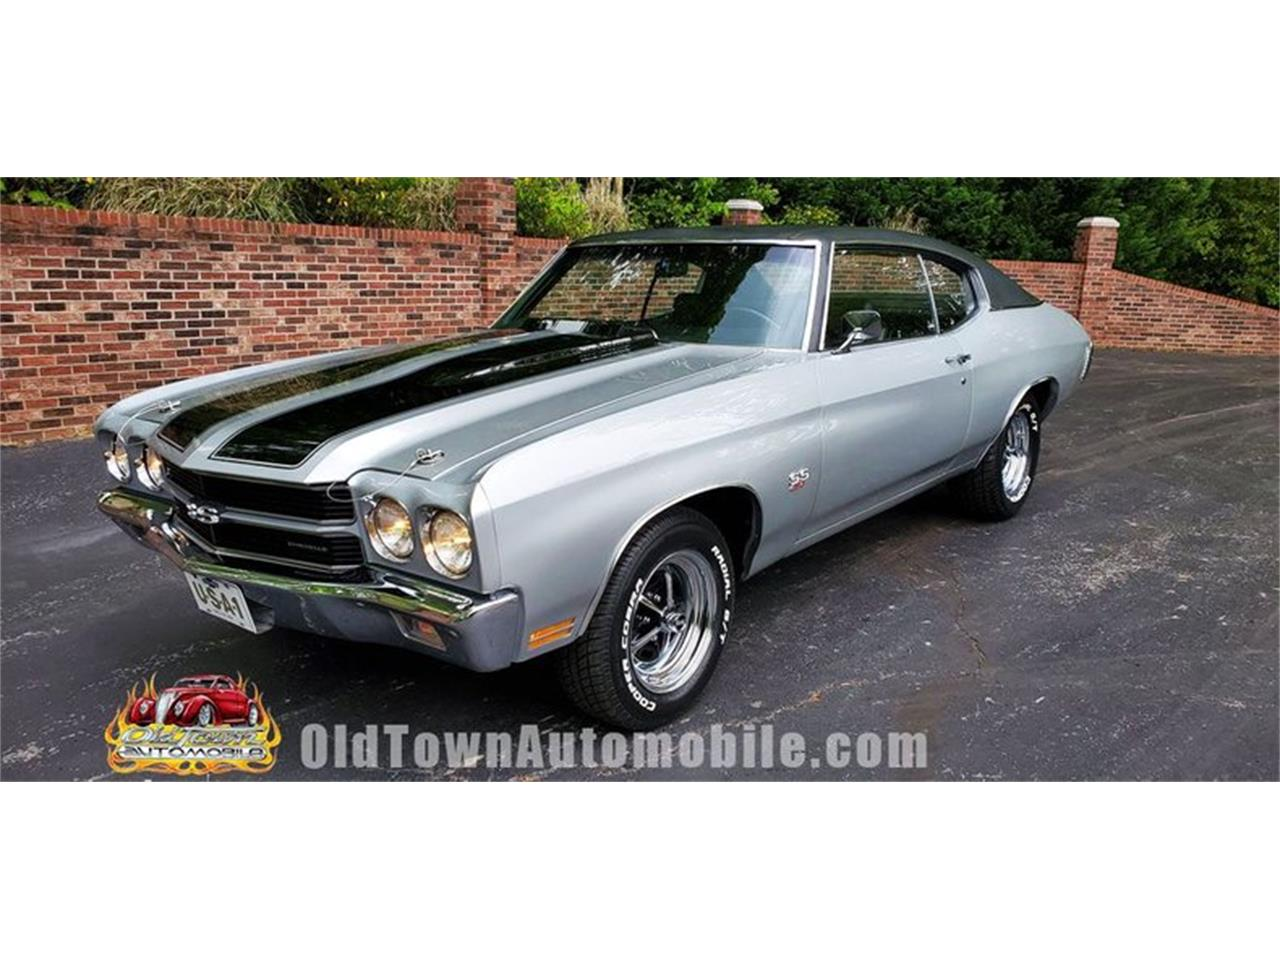 1970 Chevrolet Chevelle (CC-1351158) for sale in Huntingtown, Maryland